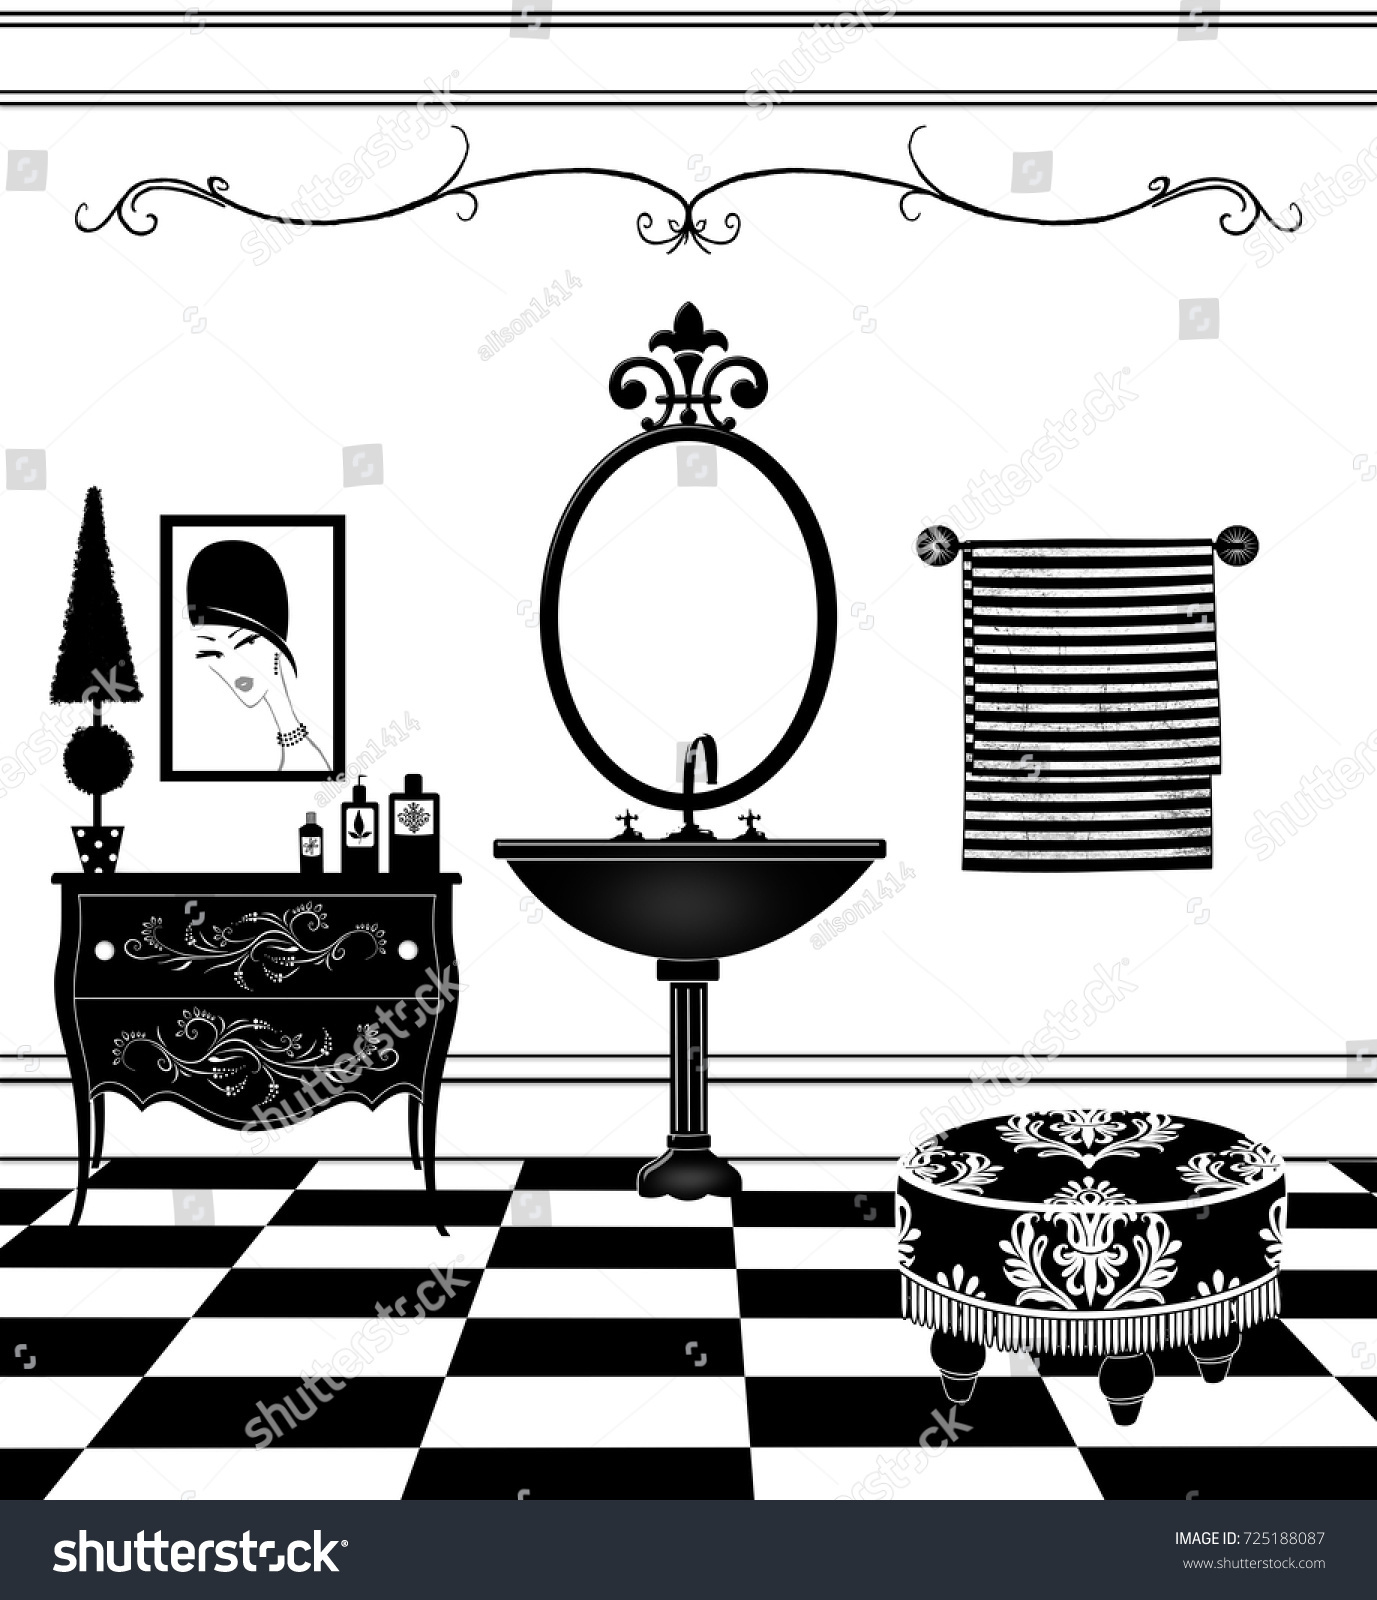 Cute Drawing Of A Black And White Bathroom With Vintage Pedestal Sink Damask Ottoman